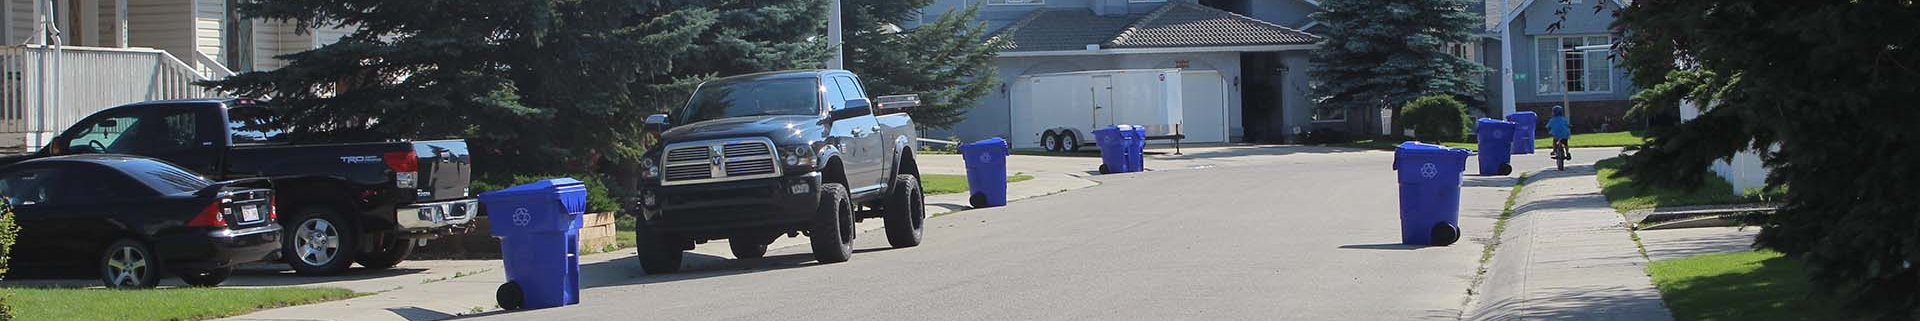 Residential street in the summertime with blue bins in front of driveways